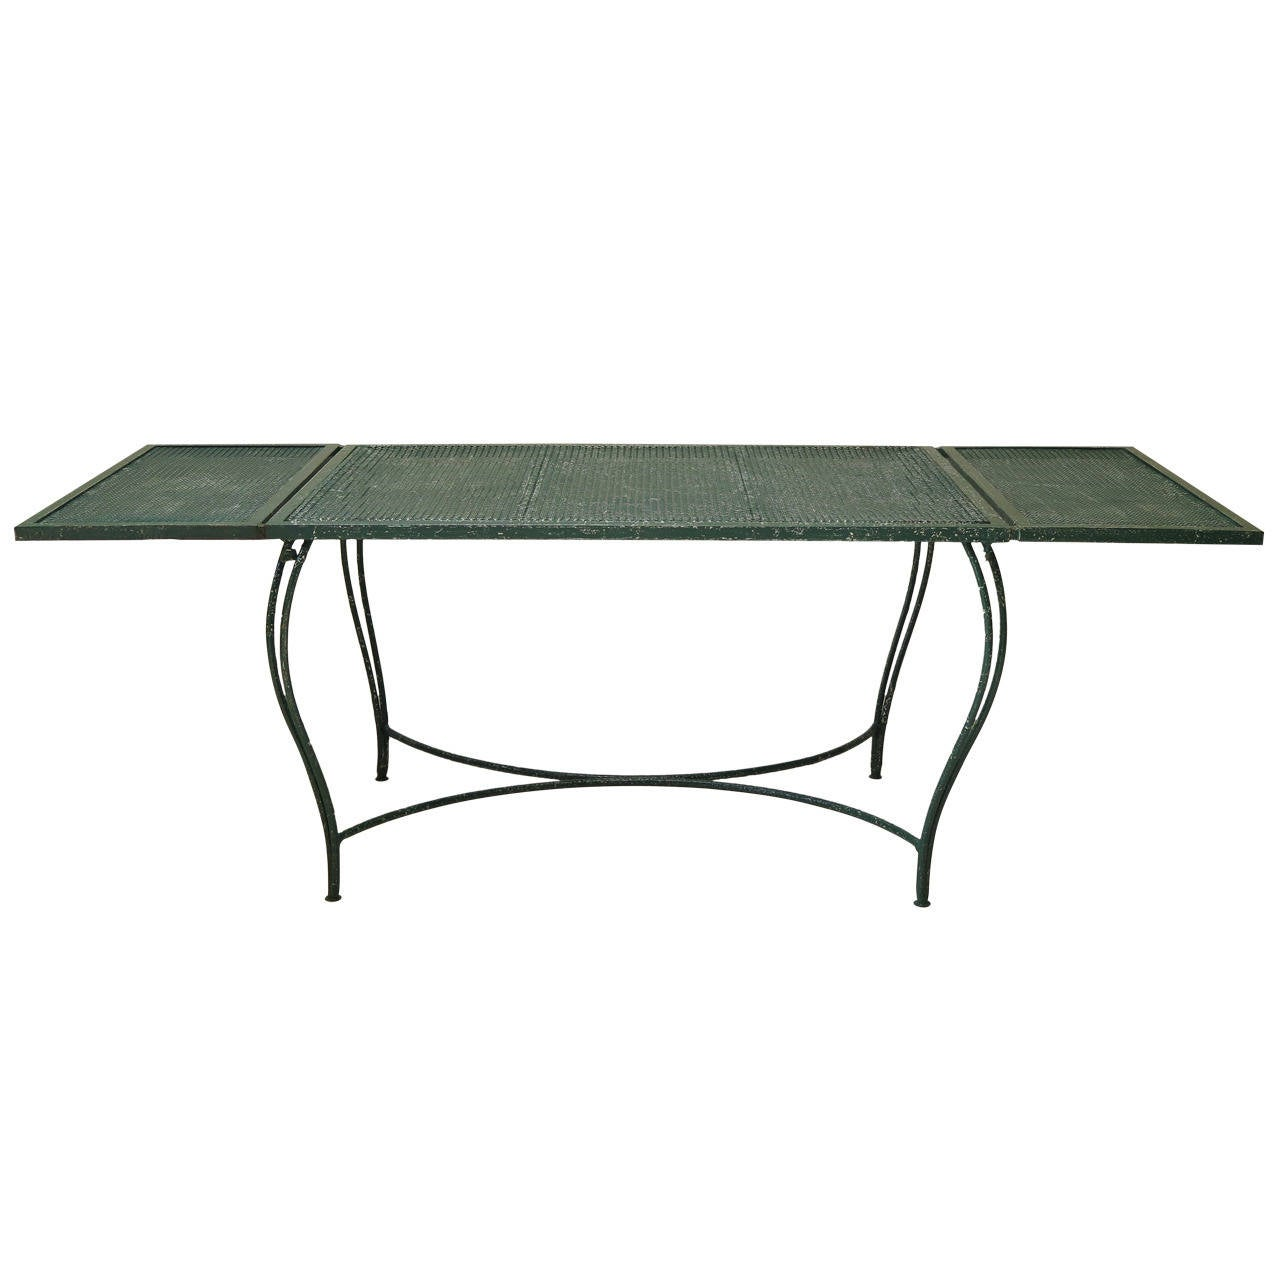 Wrought Iron Garden Dining Table - France, 1950s For Sale at 1stdibs